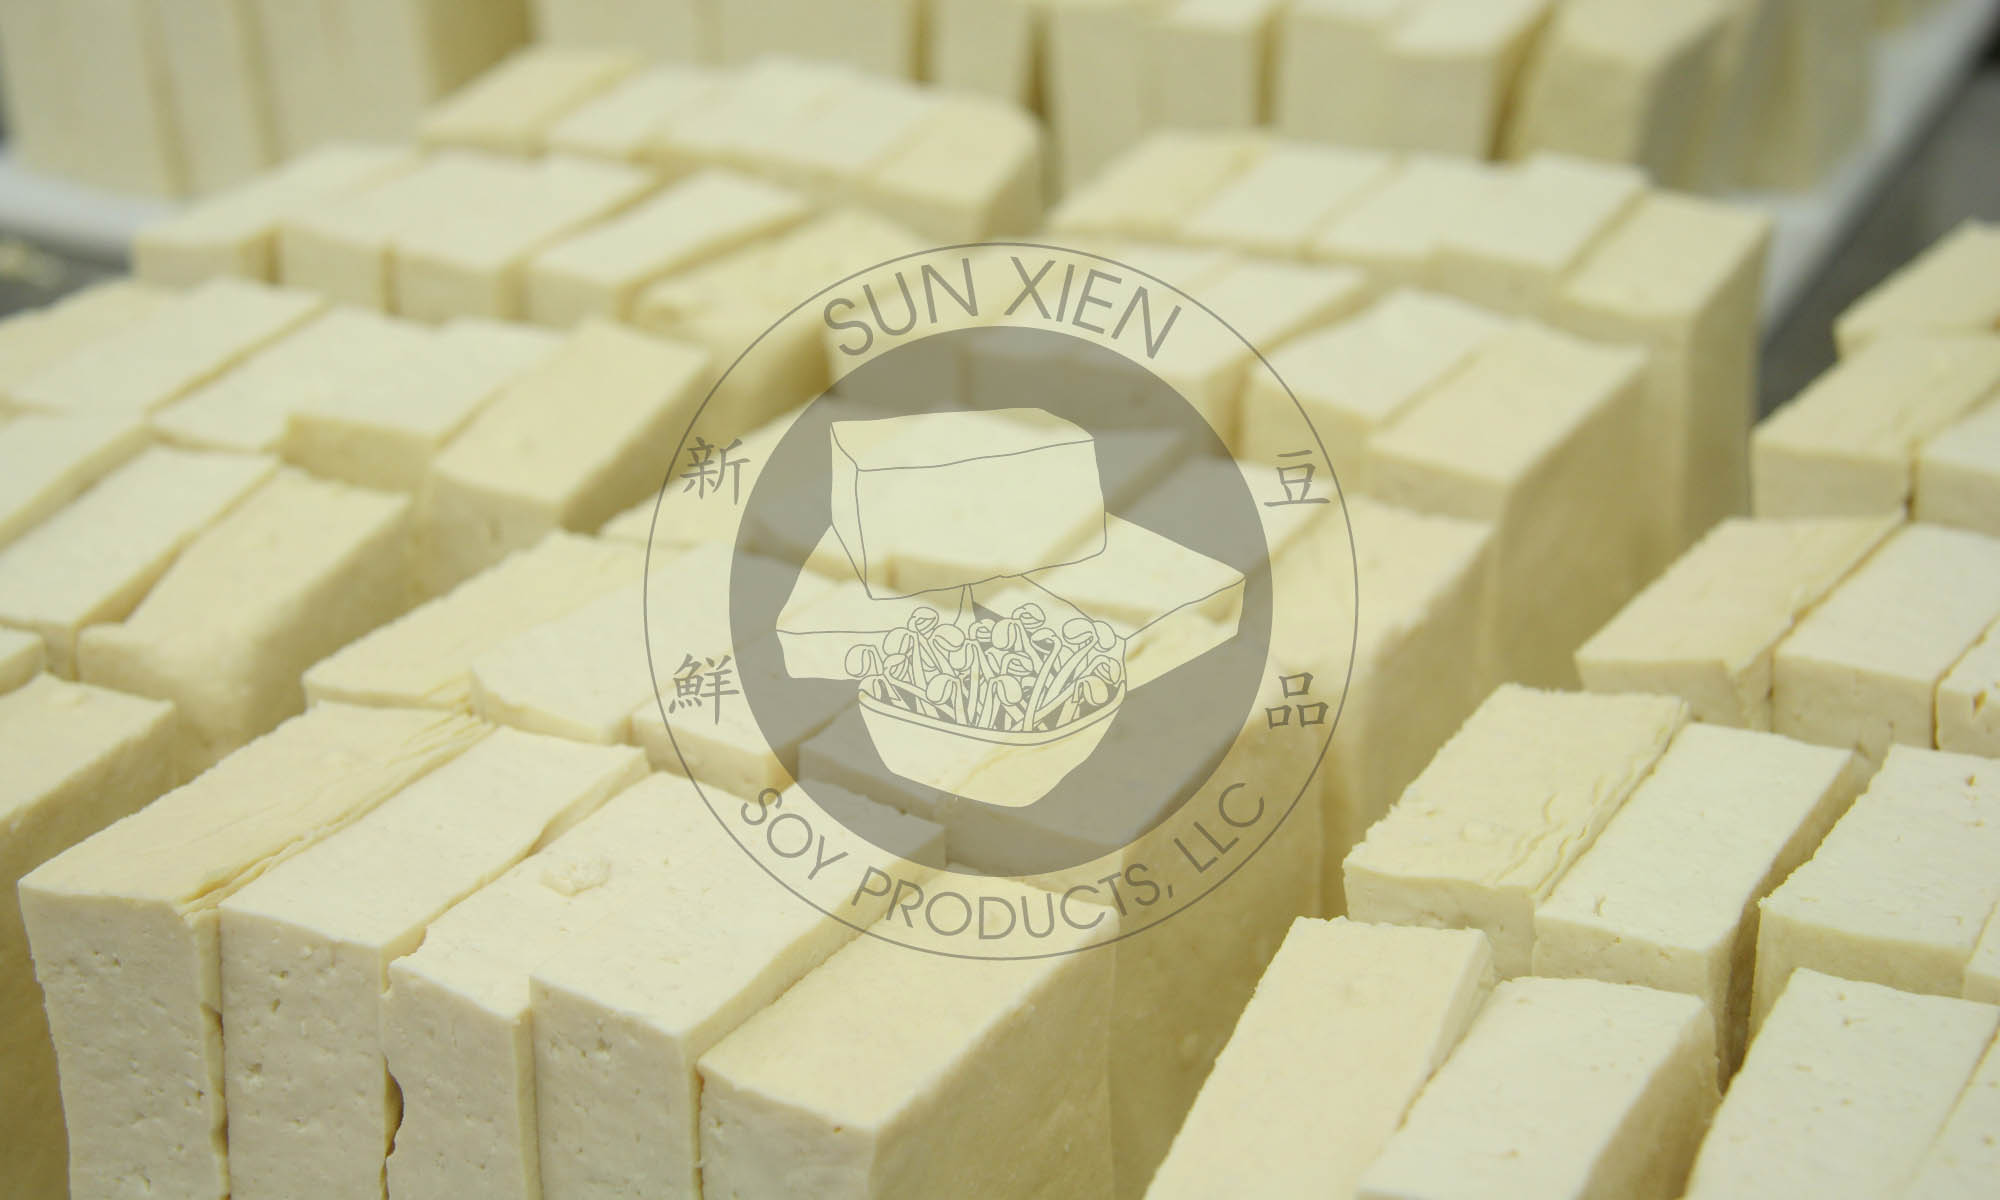 Sun Xien Soy Products